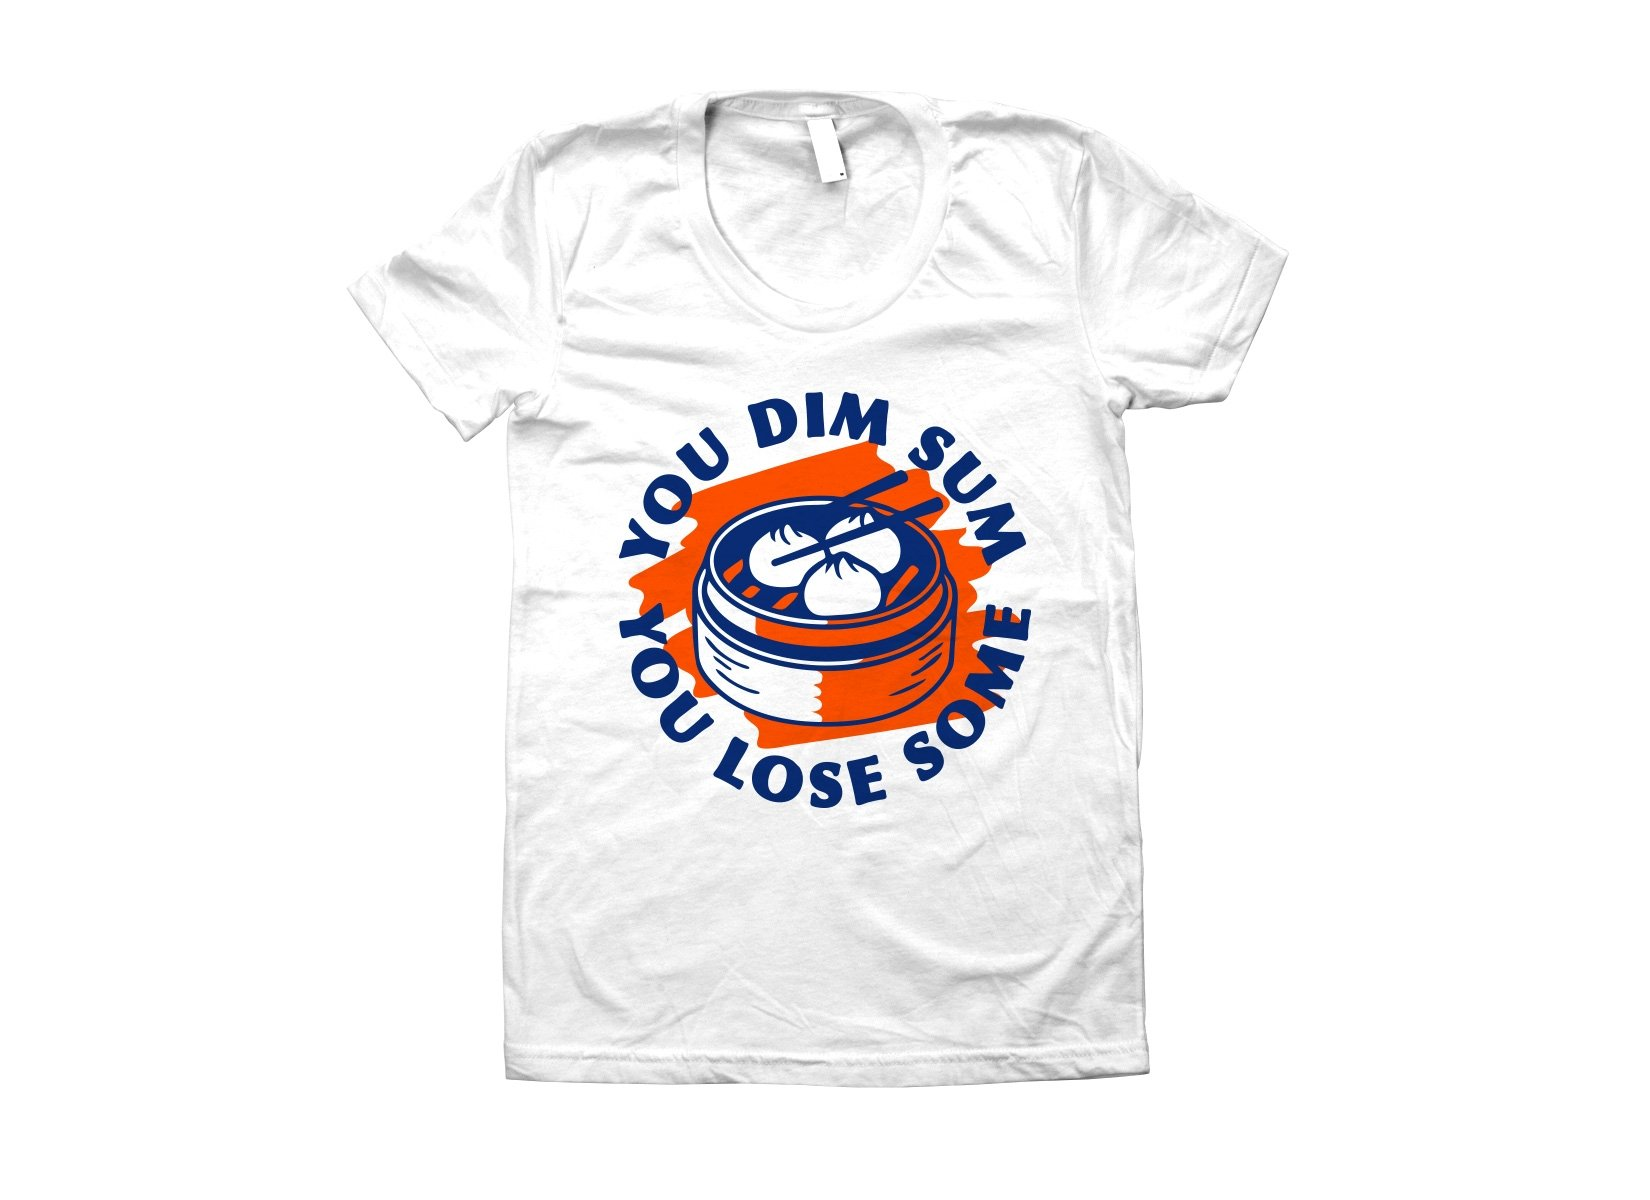 You Dim Sum You Lose Some on Juniors T-Shirt